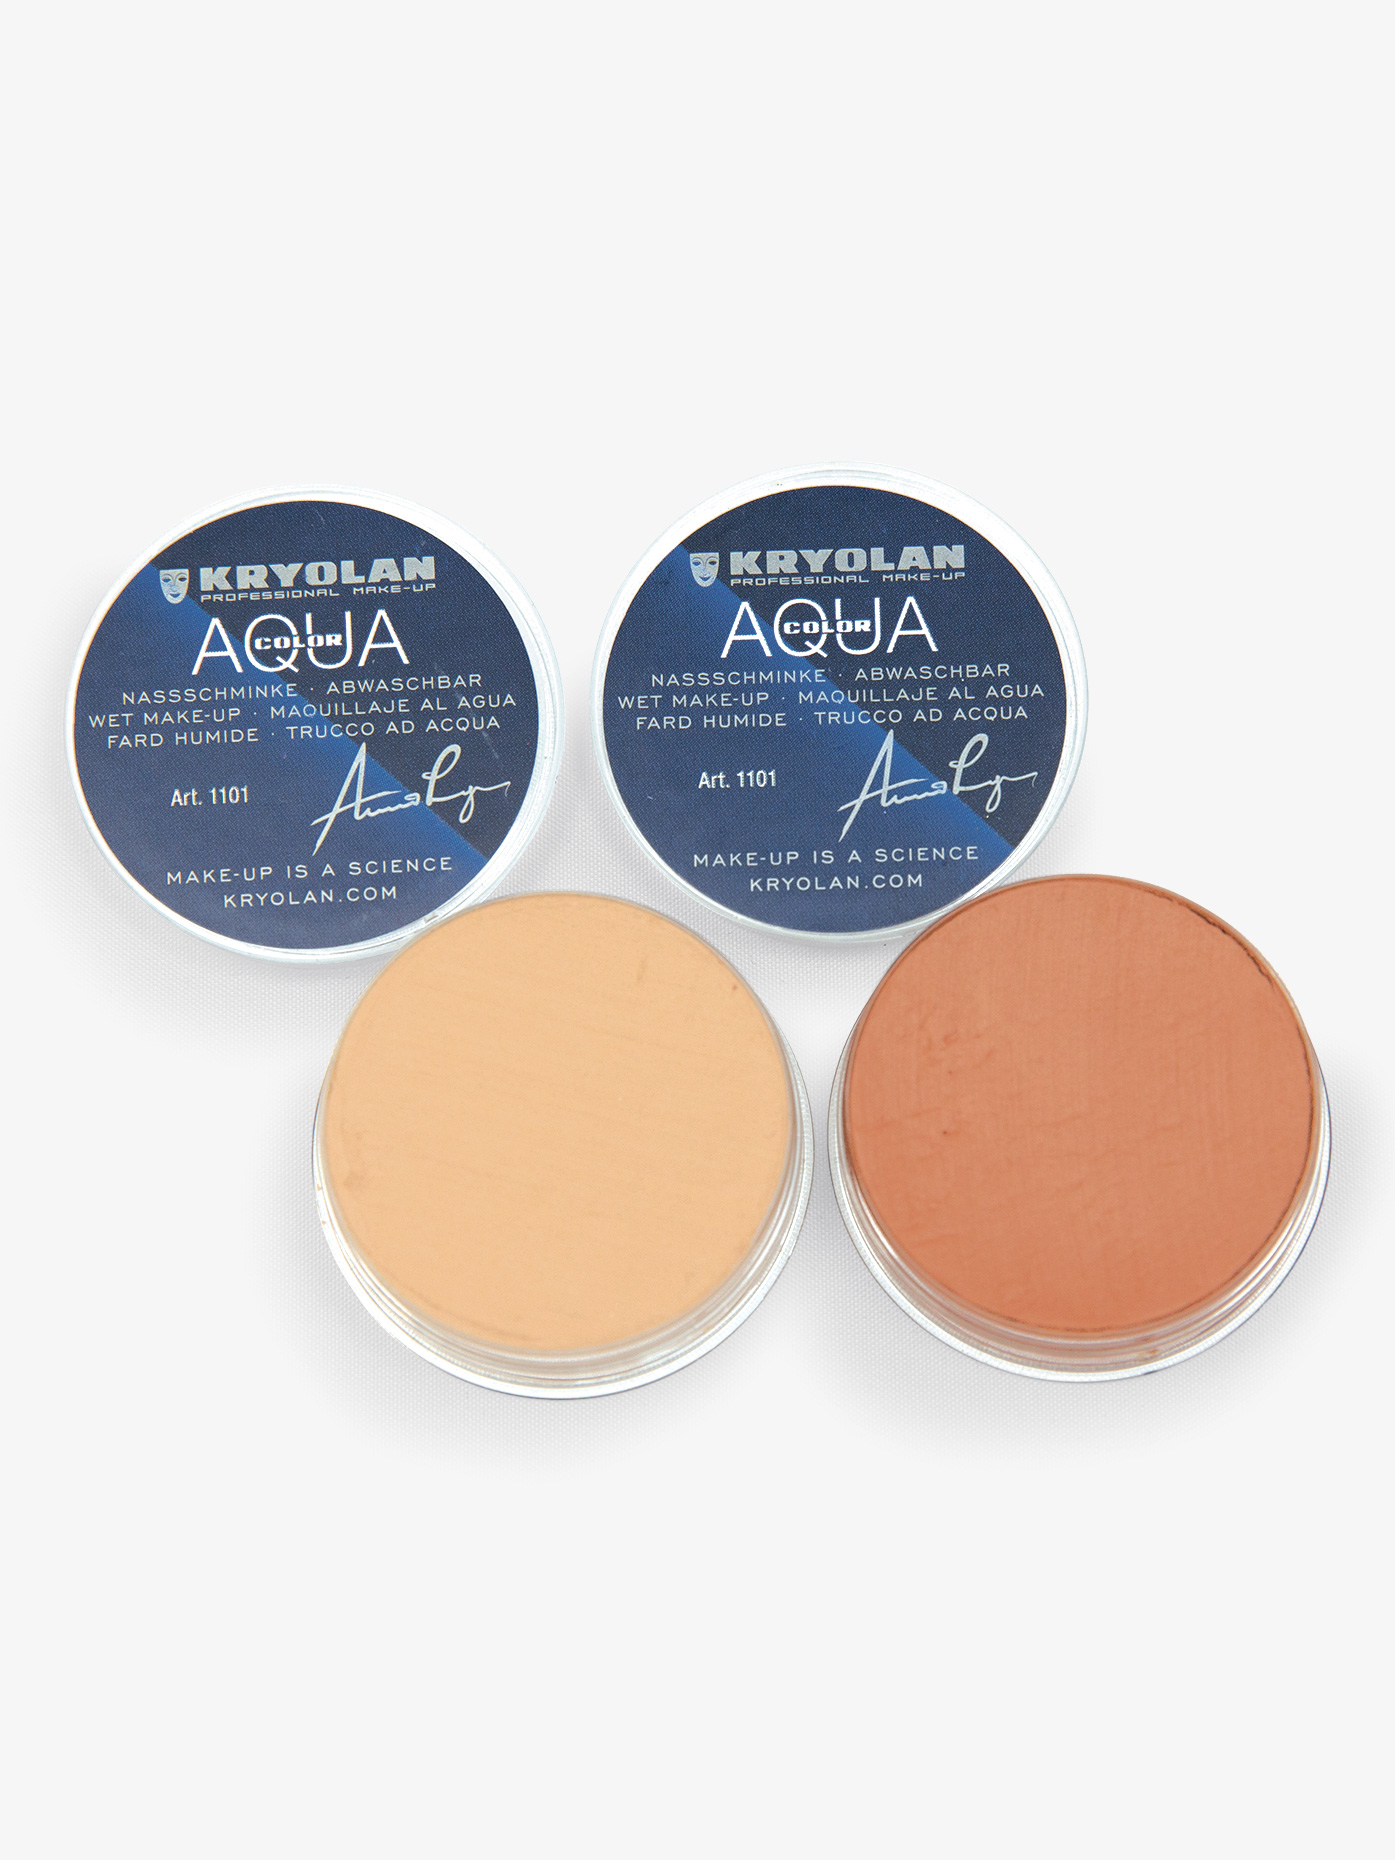 Kryolan Aquacolor Body and Shoe Makeup K1101